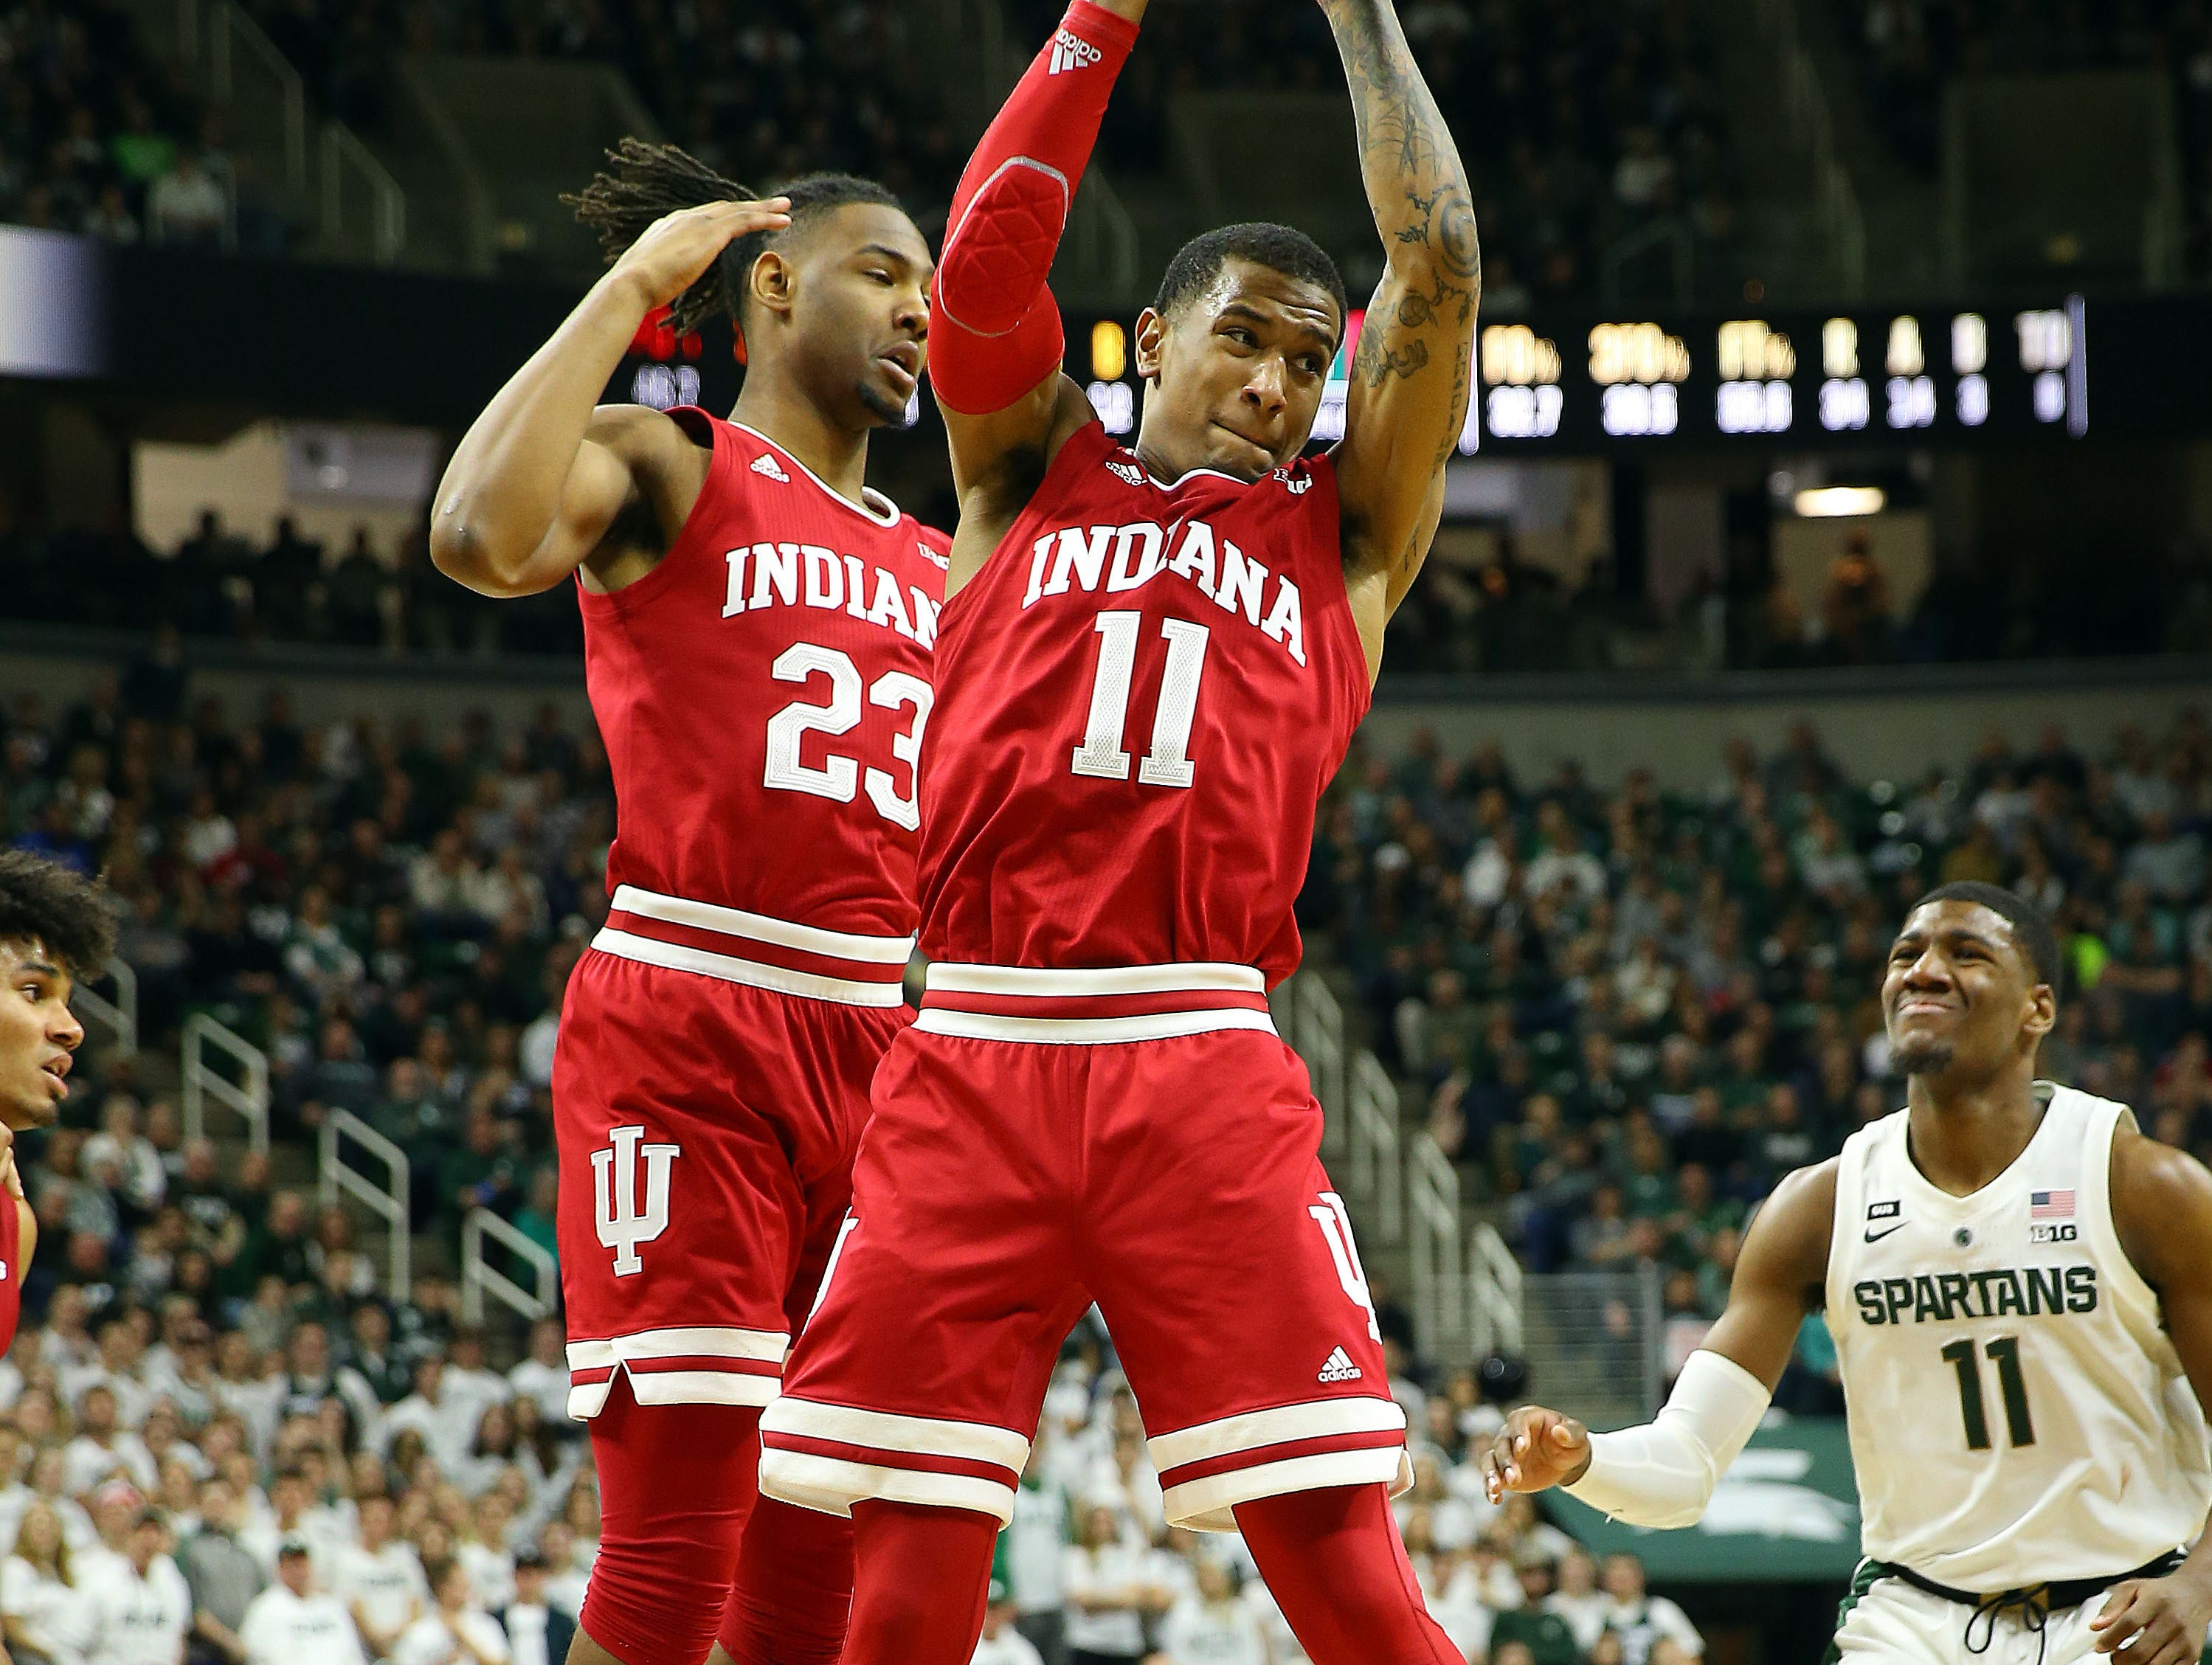 Feb 2, 2019; East Lansing, MI, USA; Indiana Hoosiers guard Devonte Green (11) gets a rebound during the second half of a game against the Michigan State Spartans at the Breslin Center. Mandatory Credit: Mike Carter-USA TODAY Sports